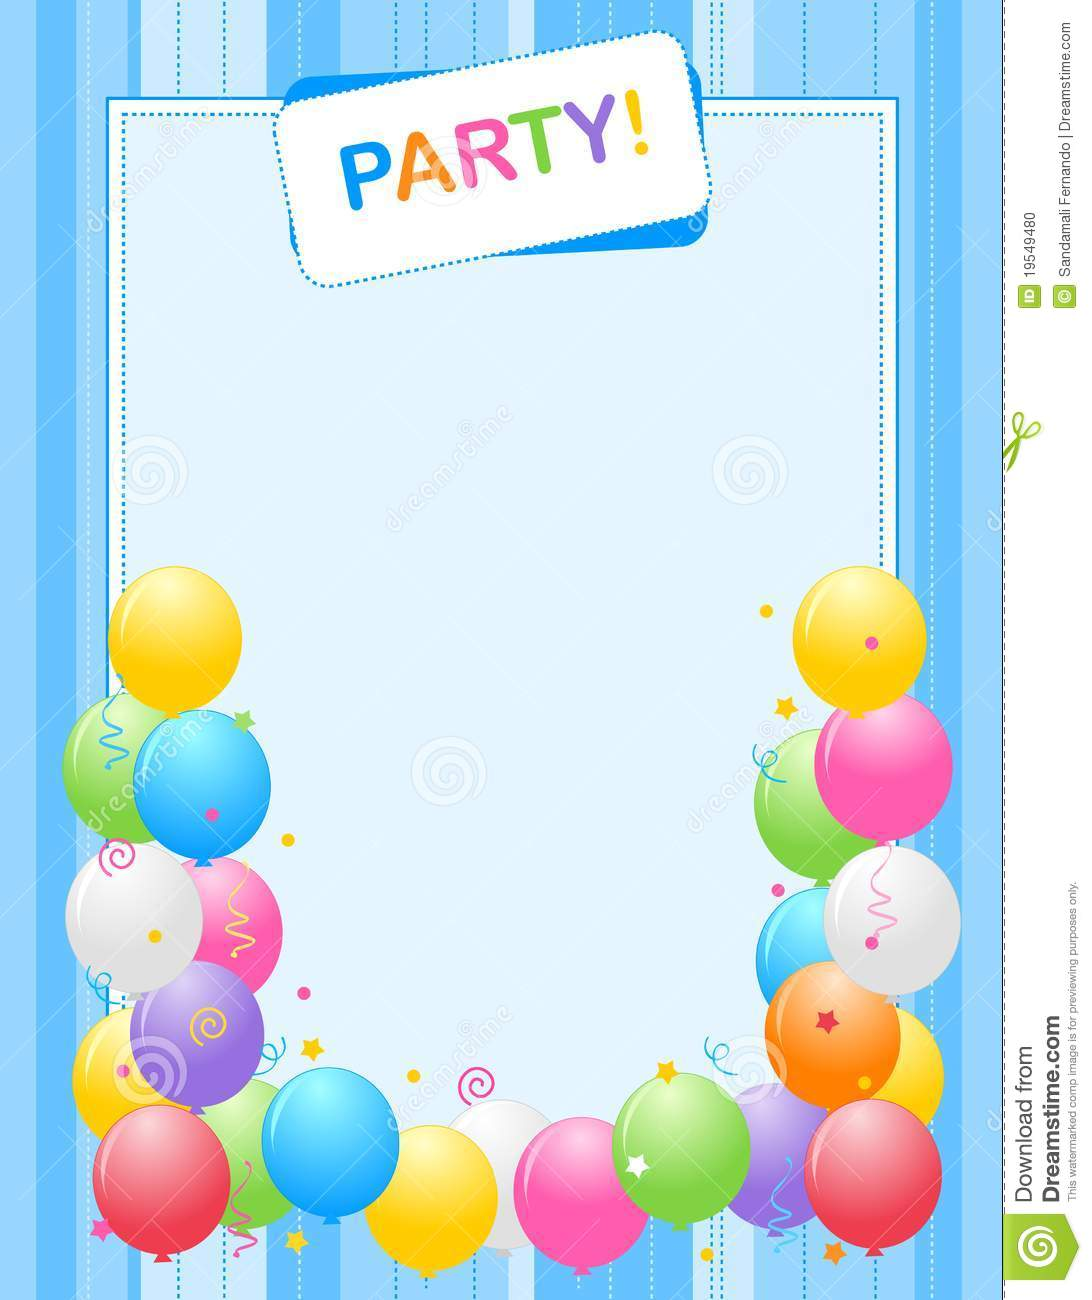 Party invitation frame stock vector Illustration of background